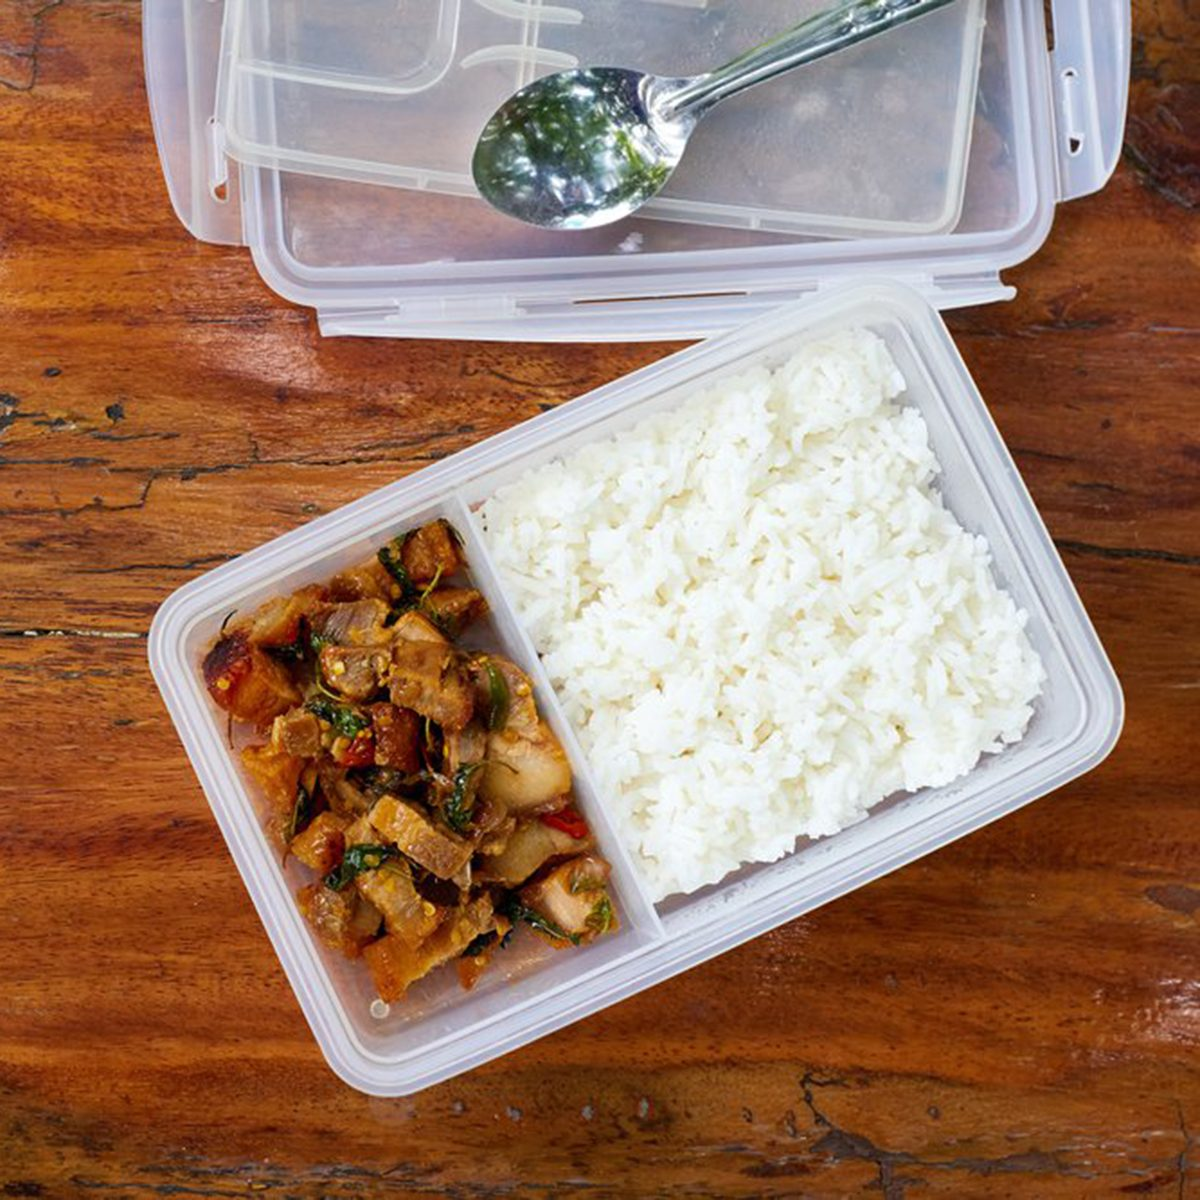 Plastic kitchen containers, one filled with rice and meat